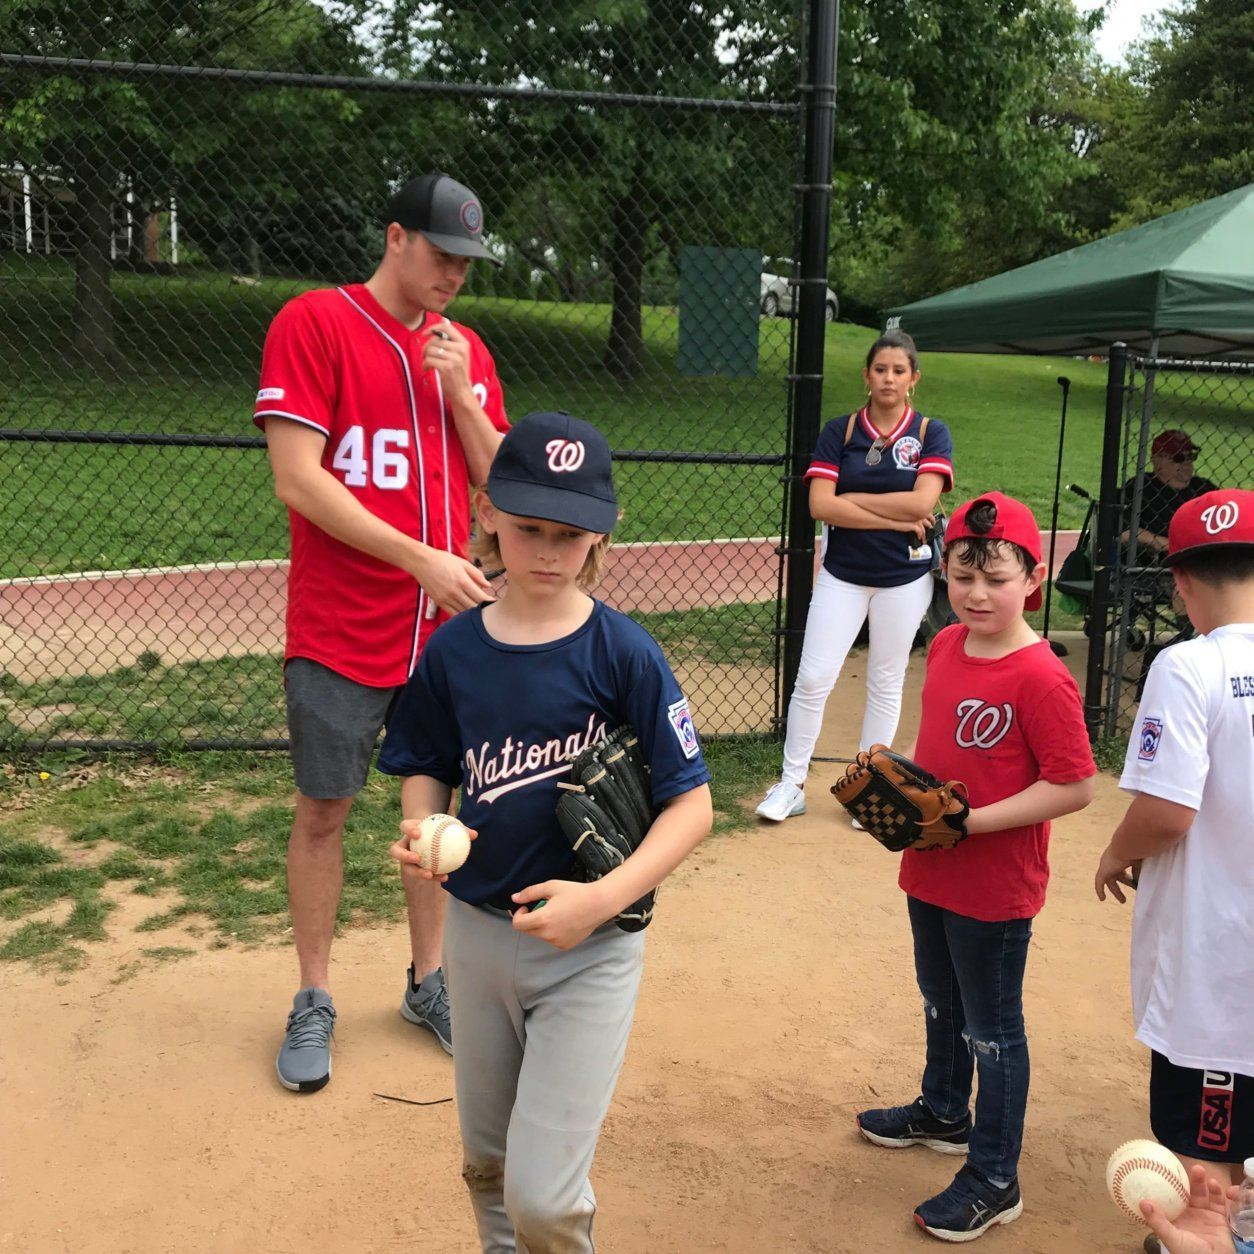 Nationals star left-handed pitcher Patrick Corbin hands out autographs and baseballs. (WTOP/Dick Uliano)